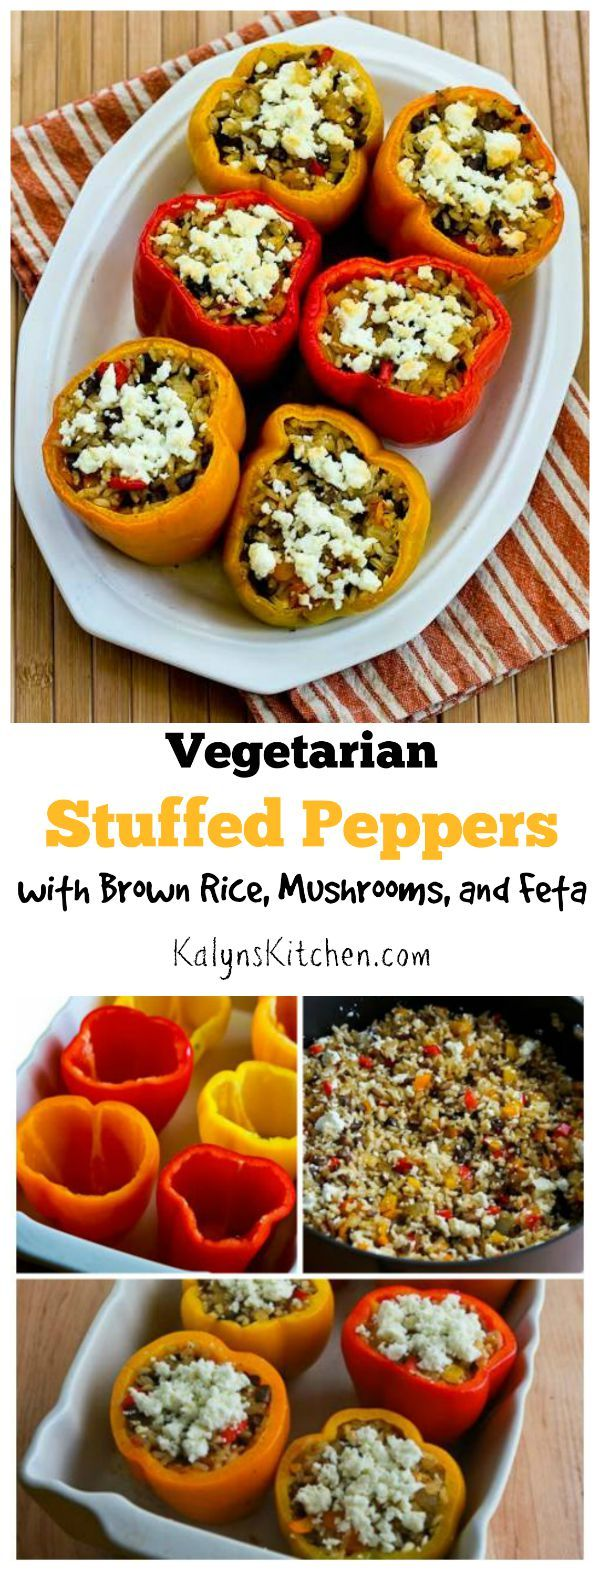 You won't miss the meat in these Vegetarian Stuffed Peppers with Brown Rice, Mushrooms, and Feta!  (Gluten-Free) [found on KalynsKitchen.com]